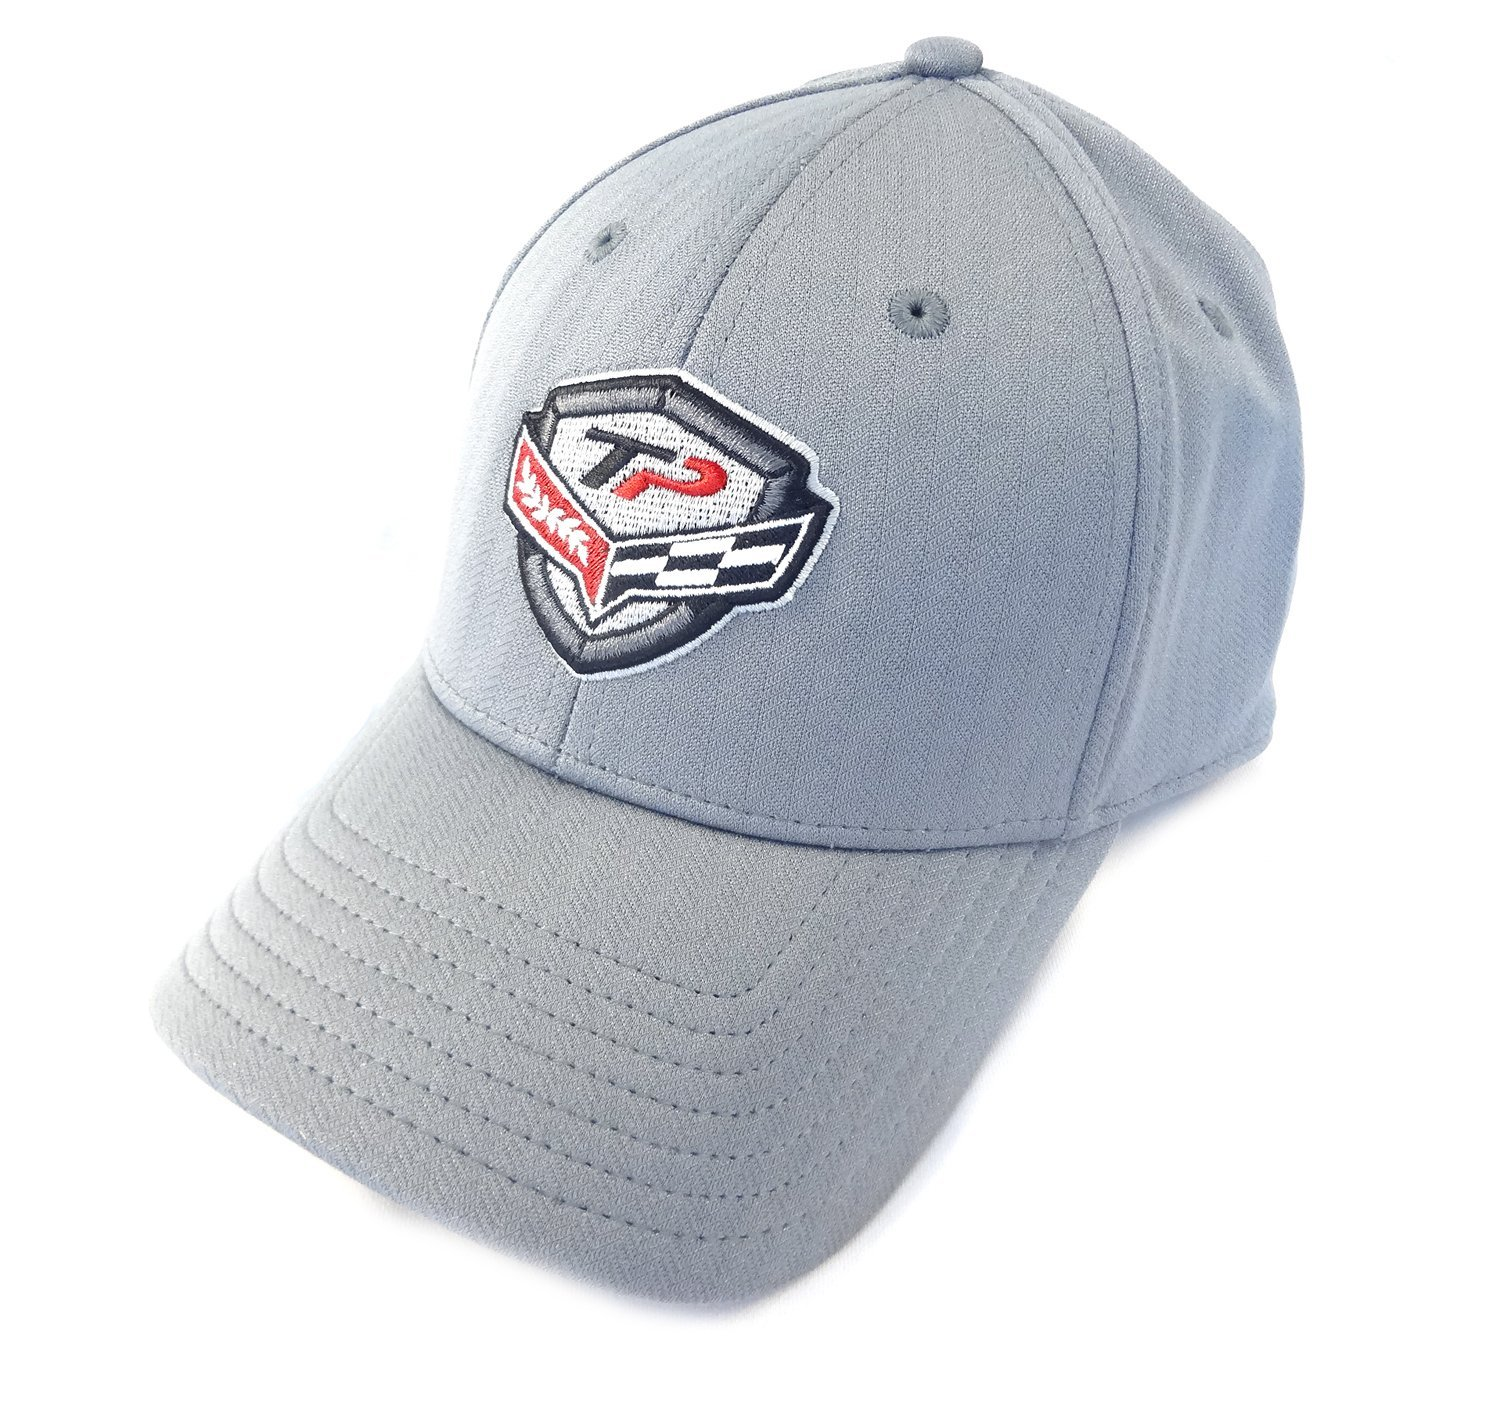 b2afe2aa642 Buy NEW TaylorMade Tour Preferred TP Badge Gray Adjustable Hat Cap ...